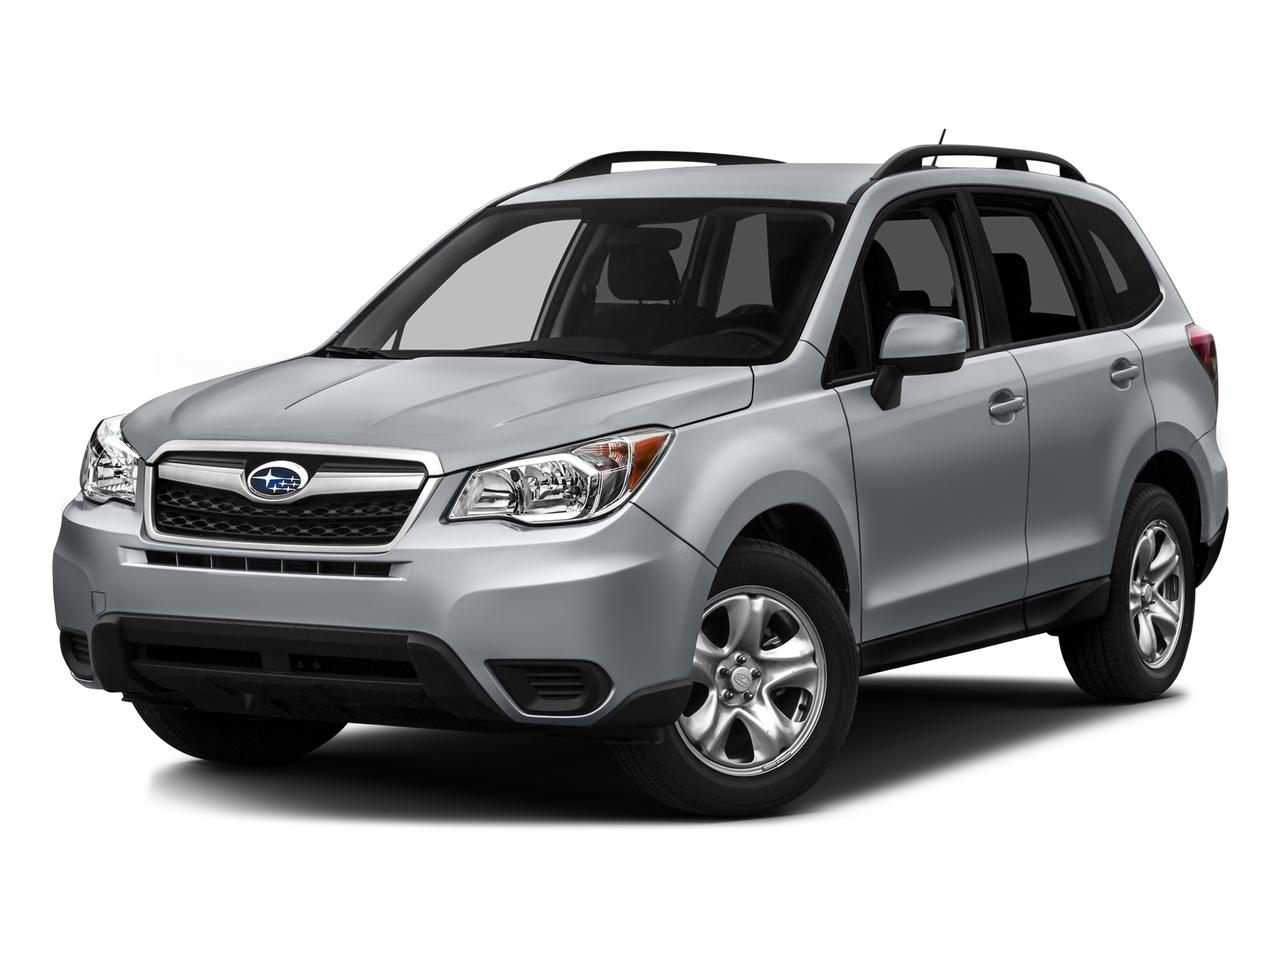 2016 Subaru Forester Vehicle Photo in Allentown, PA 18103